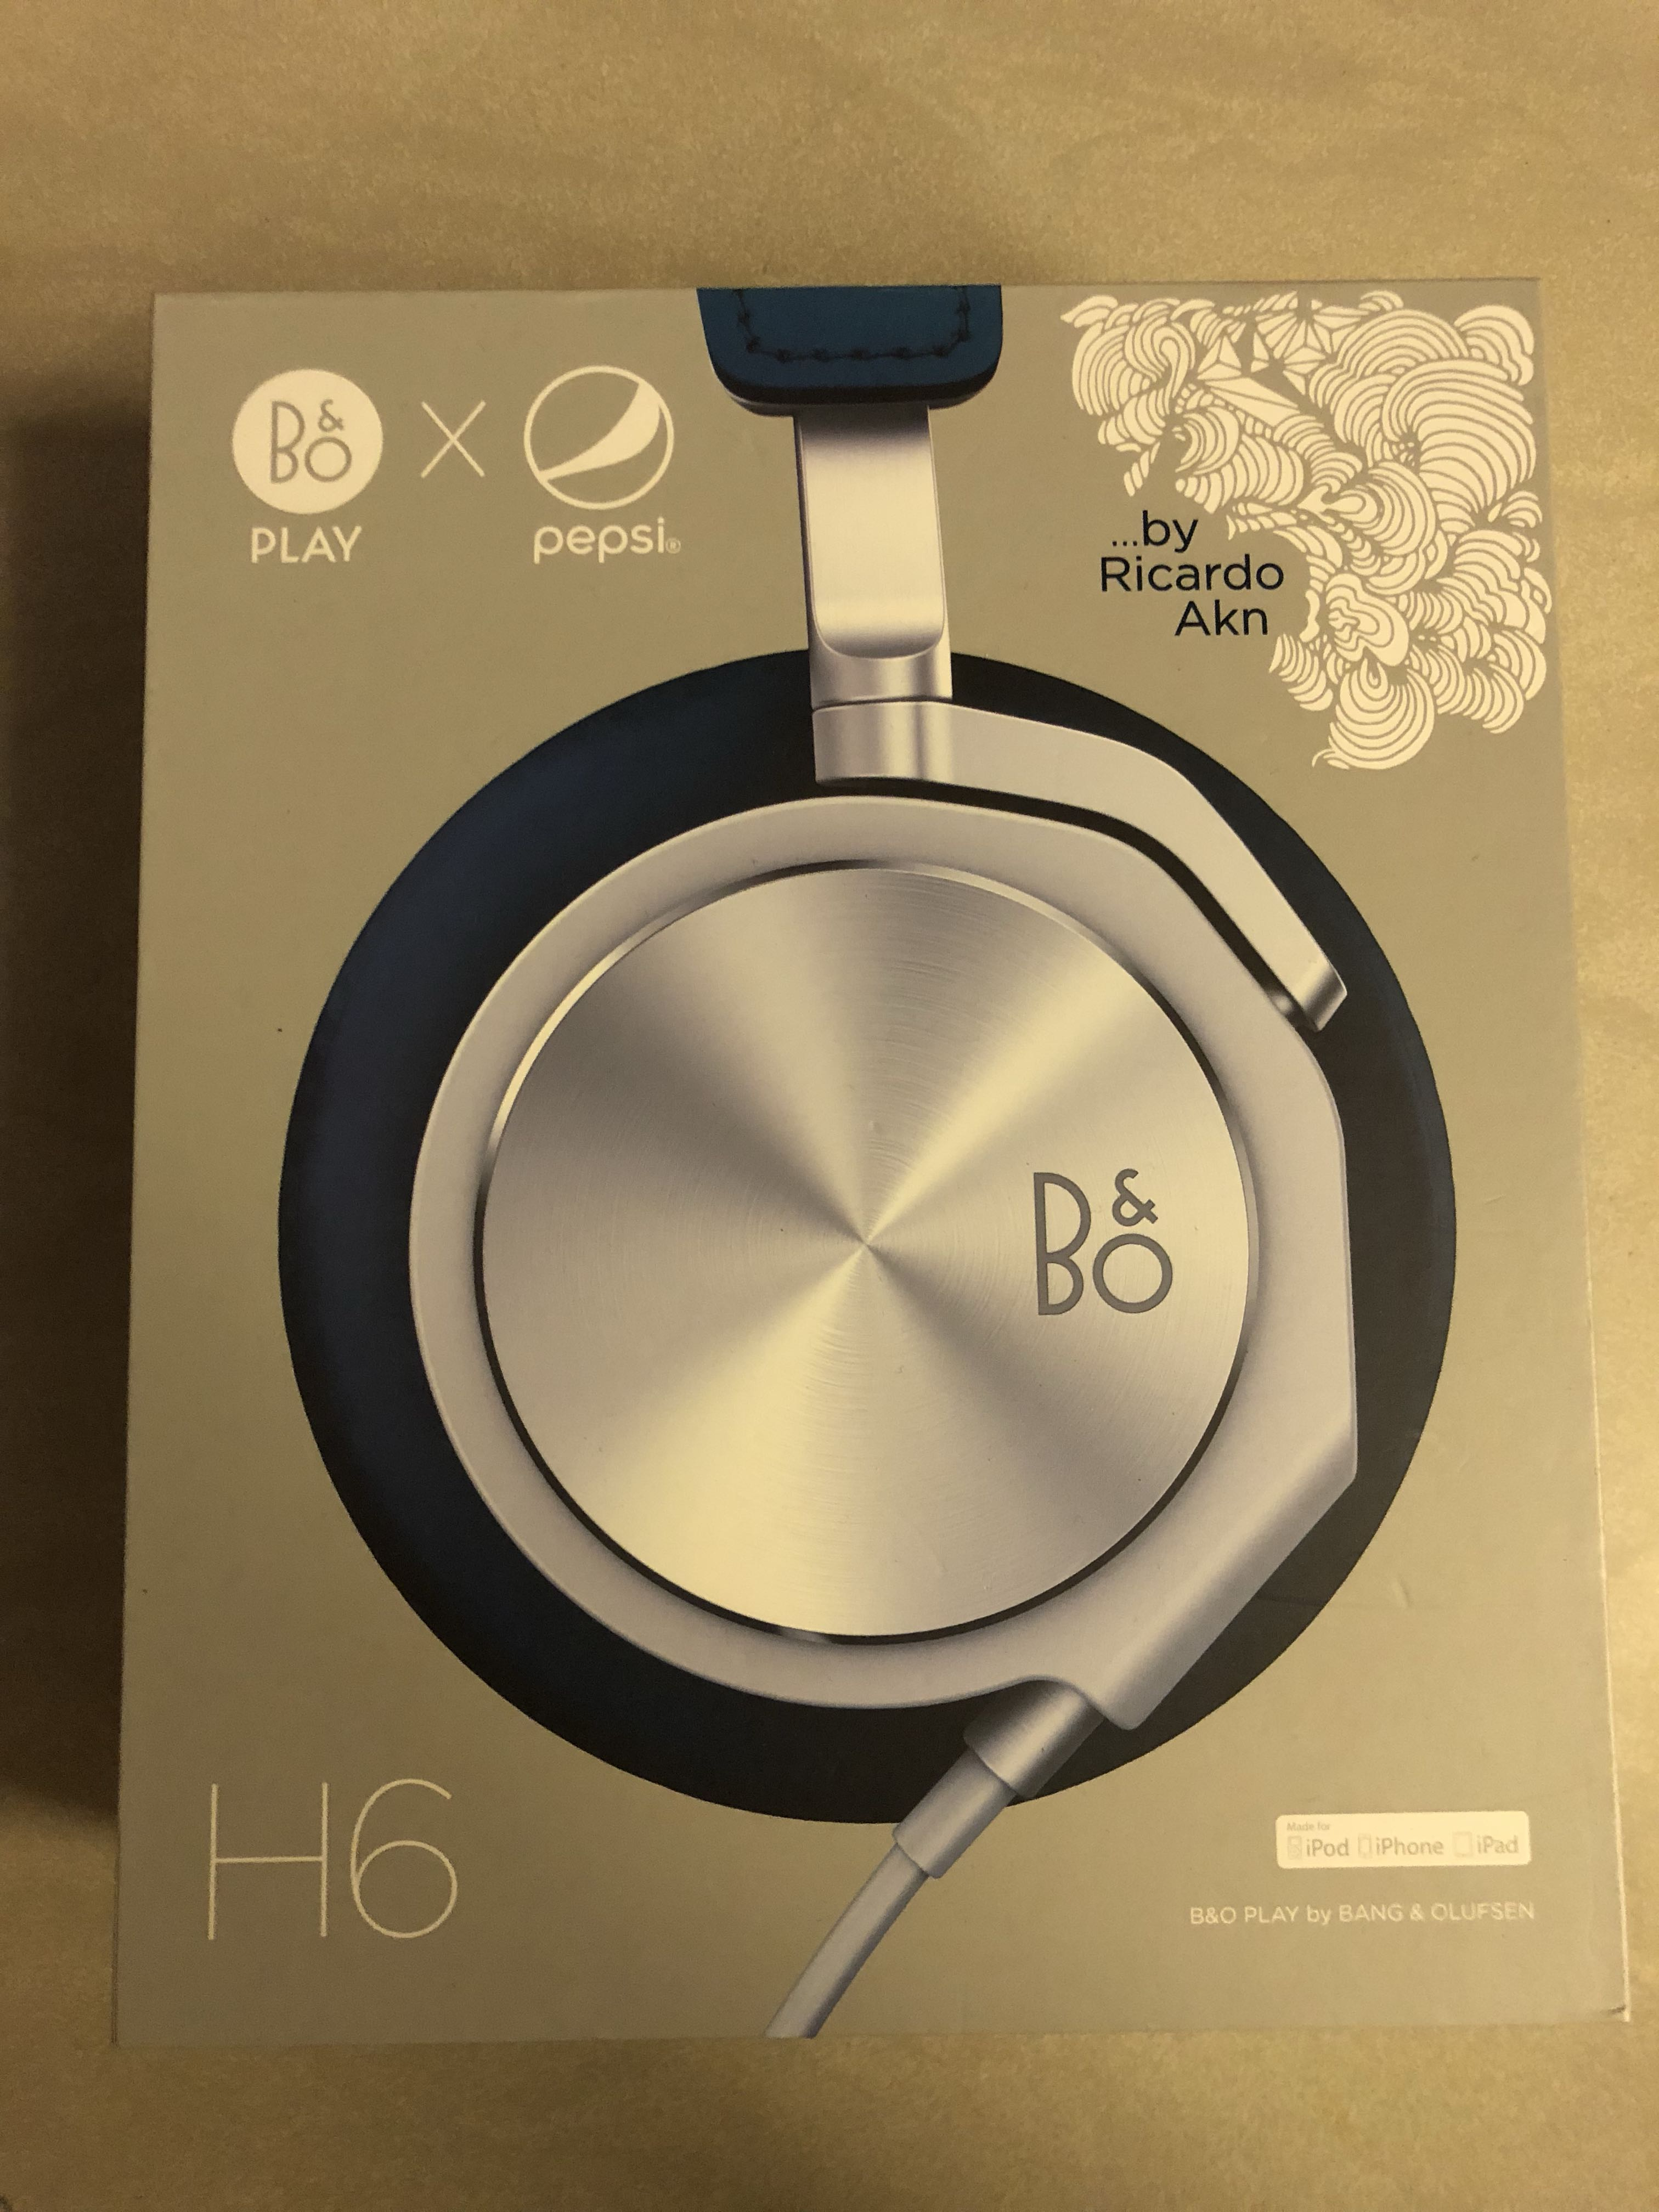 Bo Bang Olufsen Beoplay H6 Pepsi Limited Edition Electronics Ampamp H3 Lightweight Earphone Silver Audio On Carousell